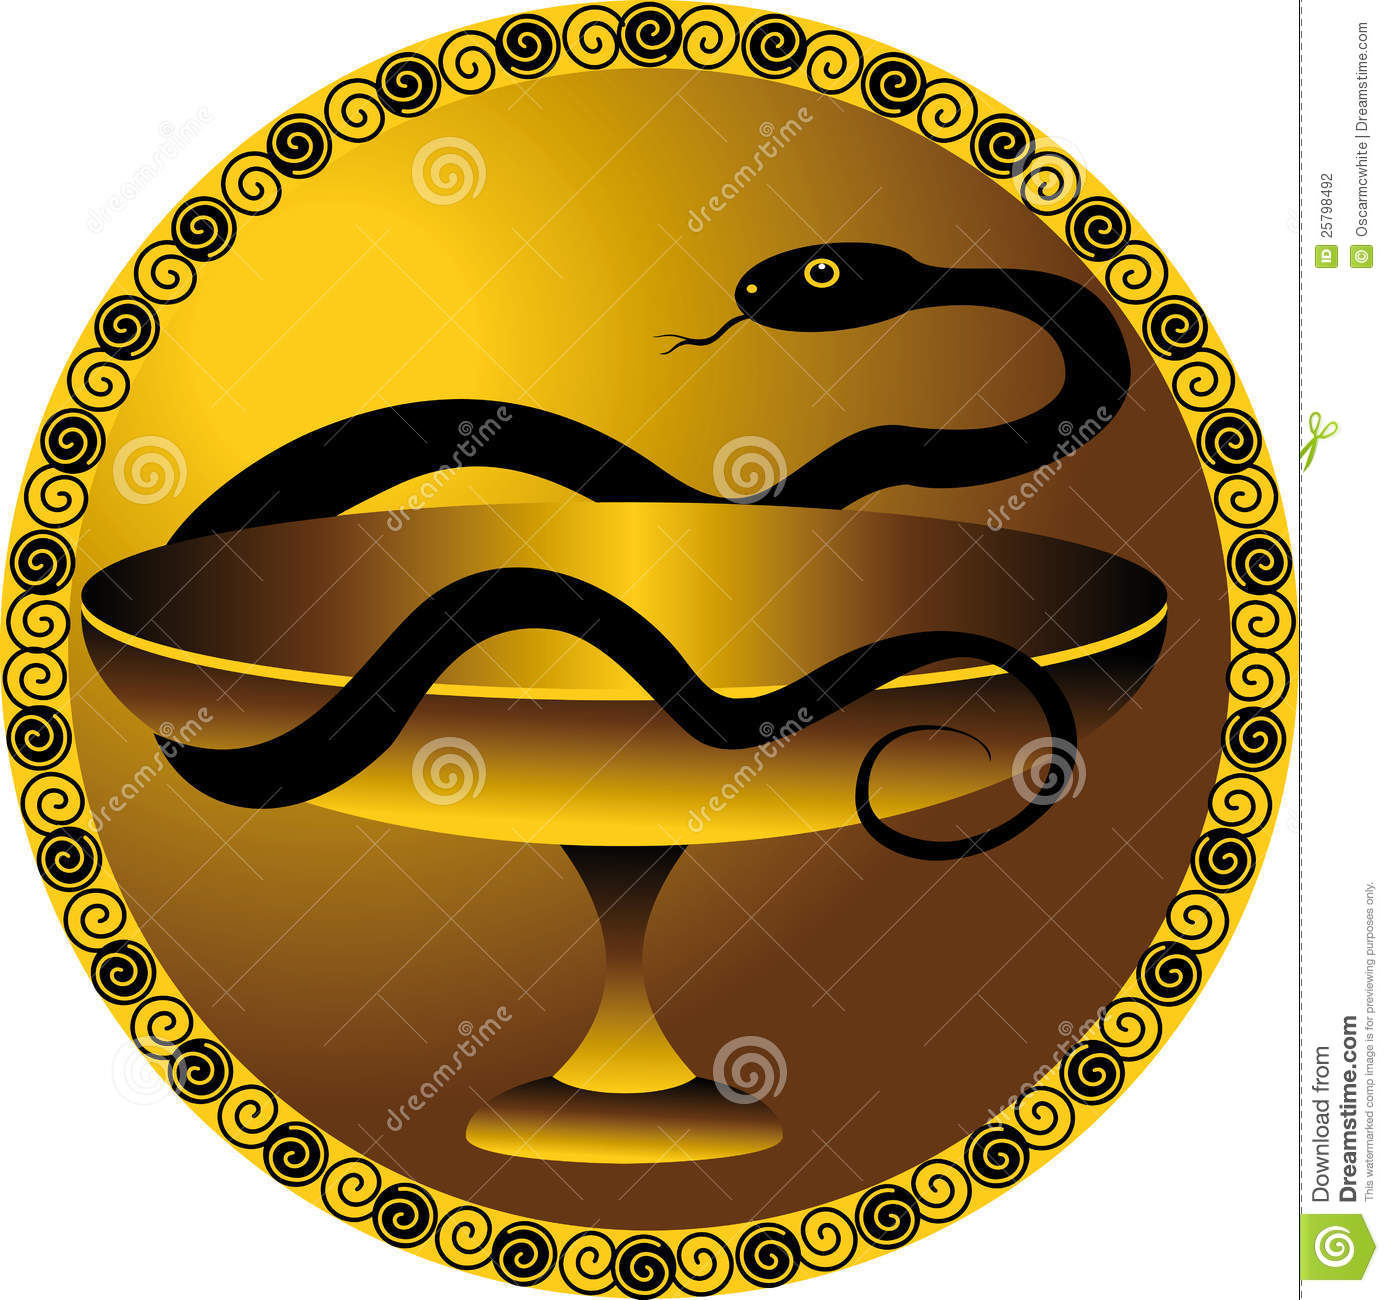 Snake A Symbol Of The Medical Stock Vector Illustration Of Life